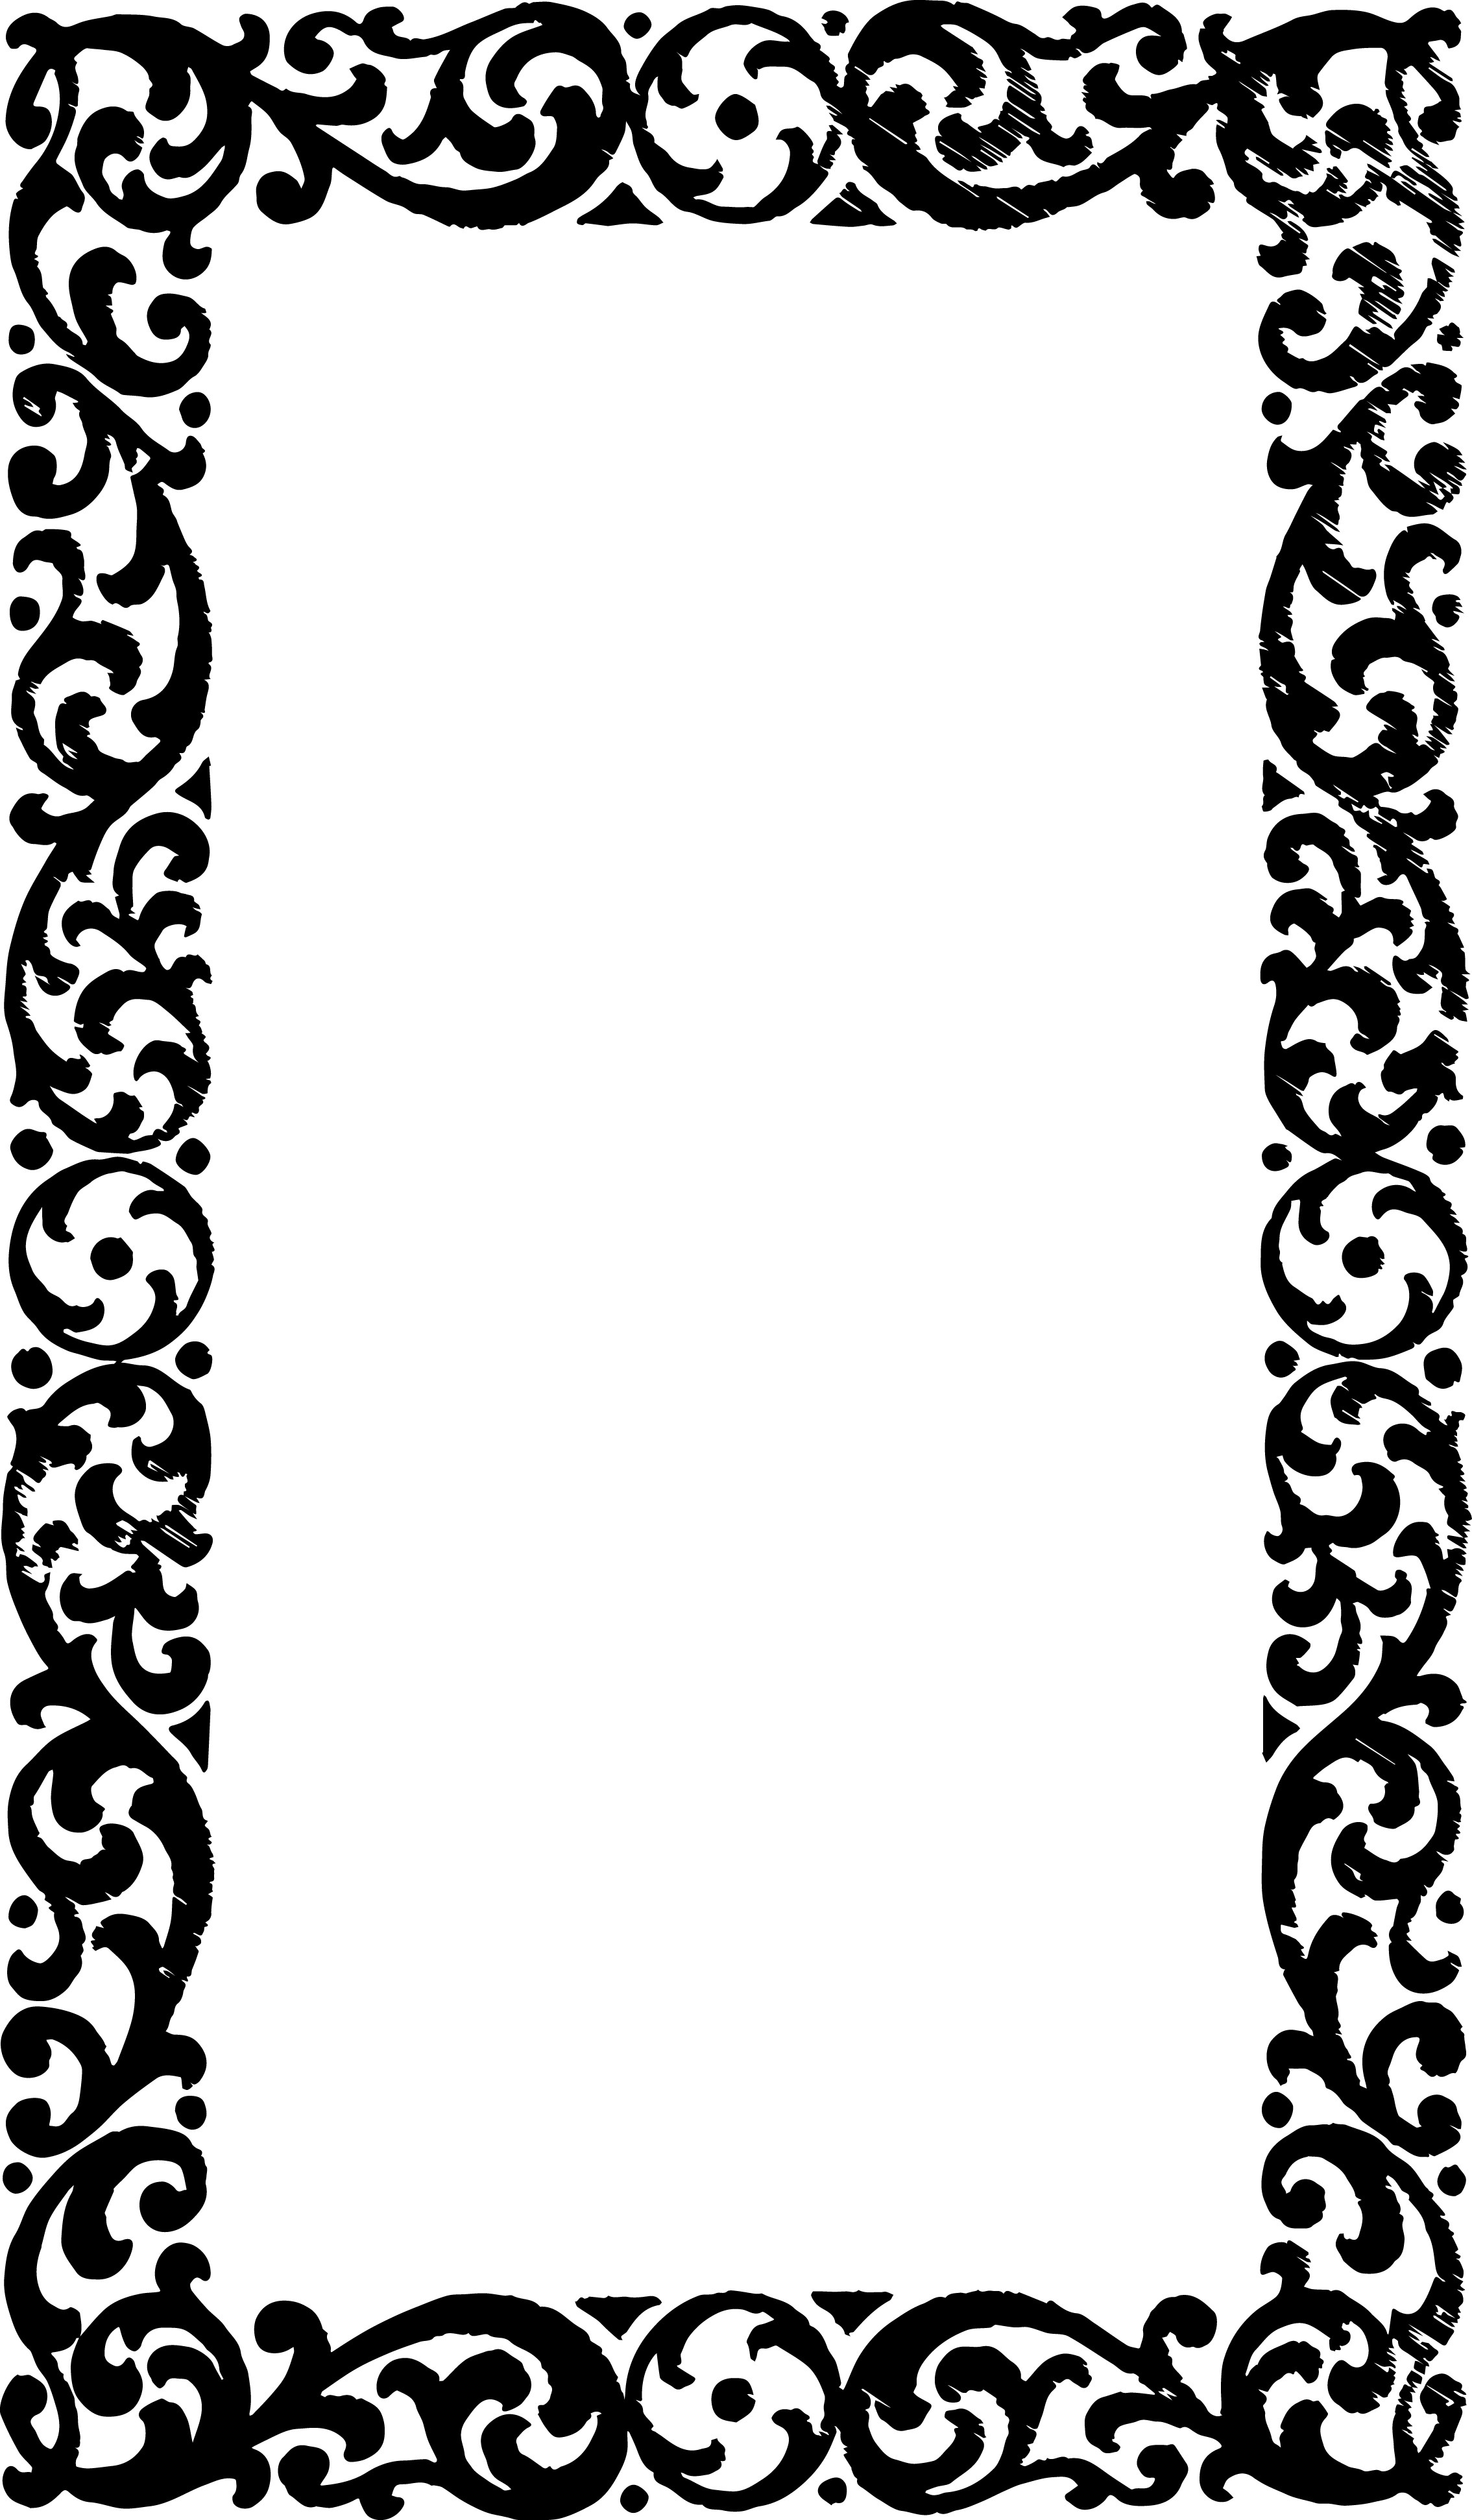 2269x3885 Free Vector Art Amp Clipart Vintage Frame Border Oh So Nifty